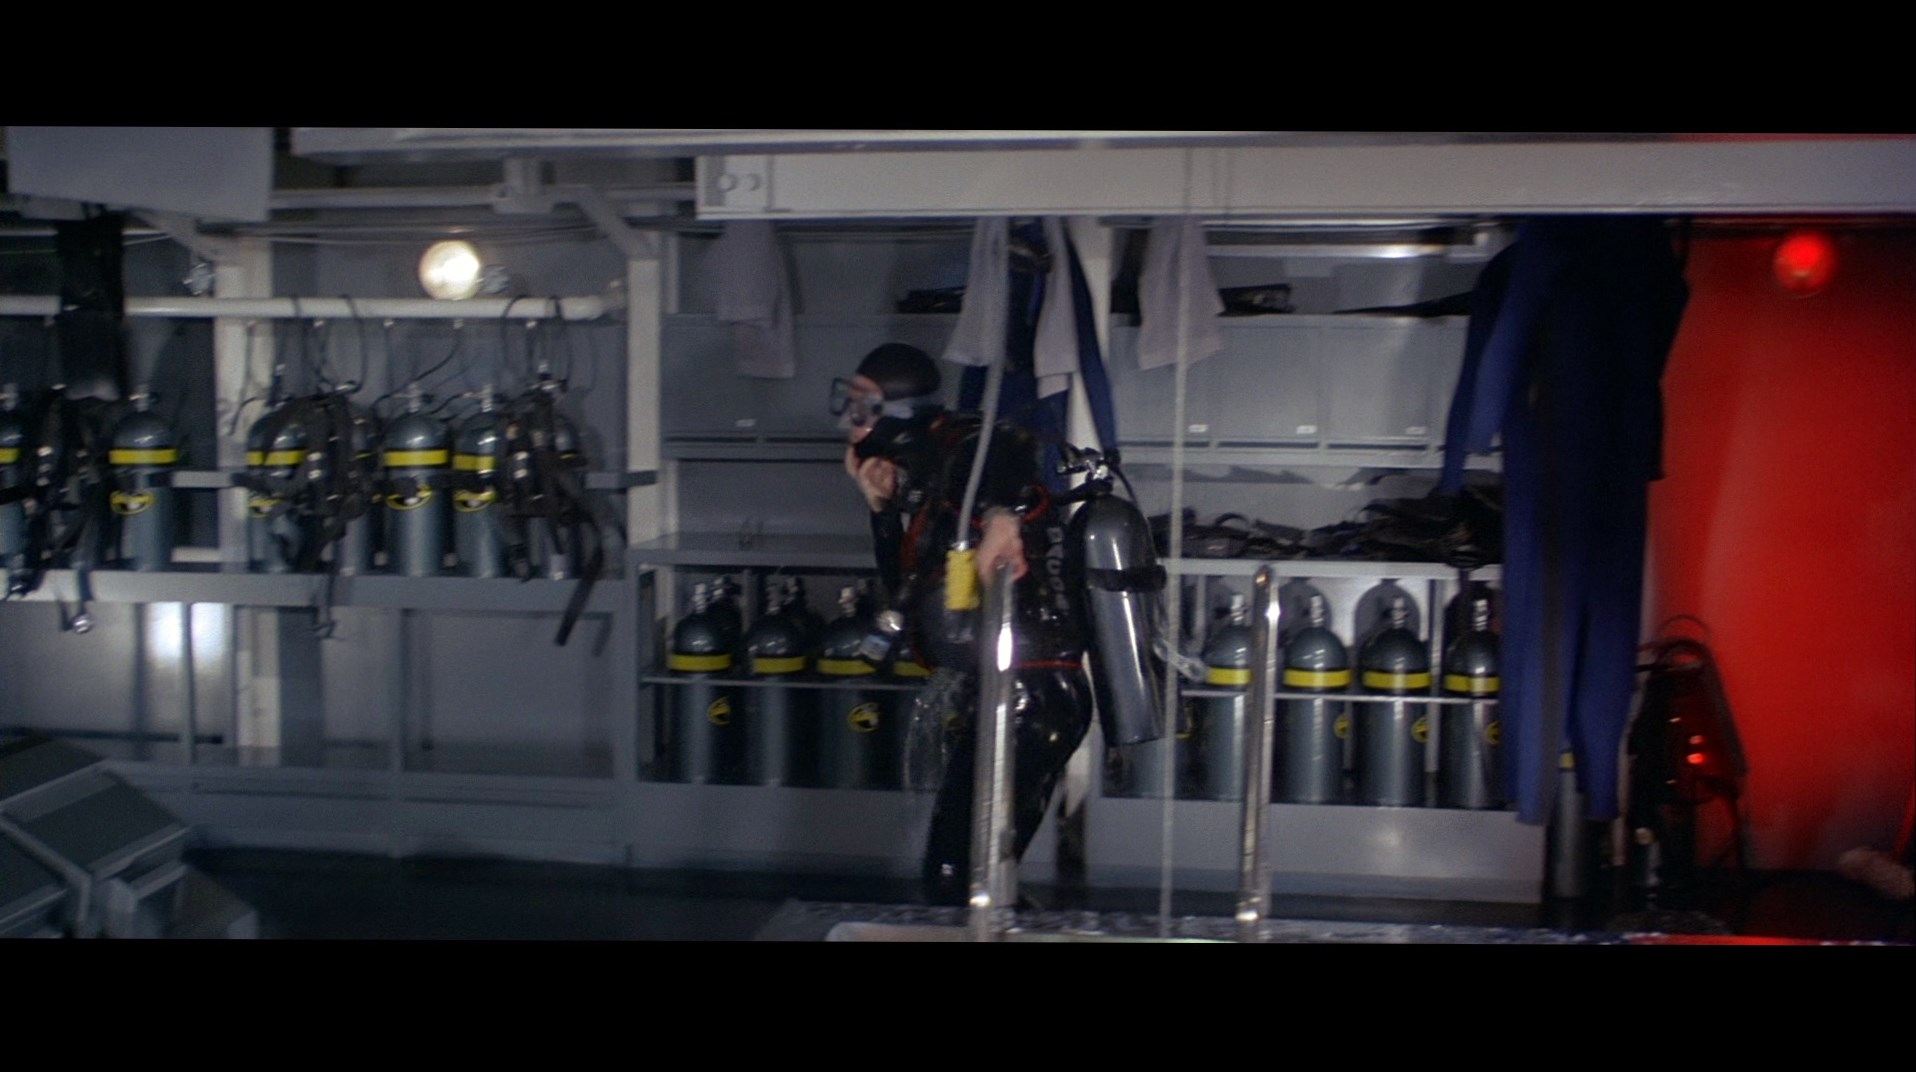 James Bond's (Timothy Dalton) Scuba Equipment